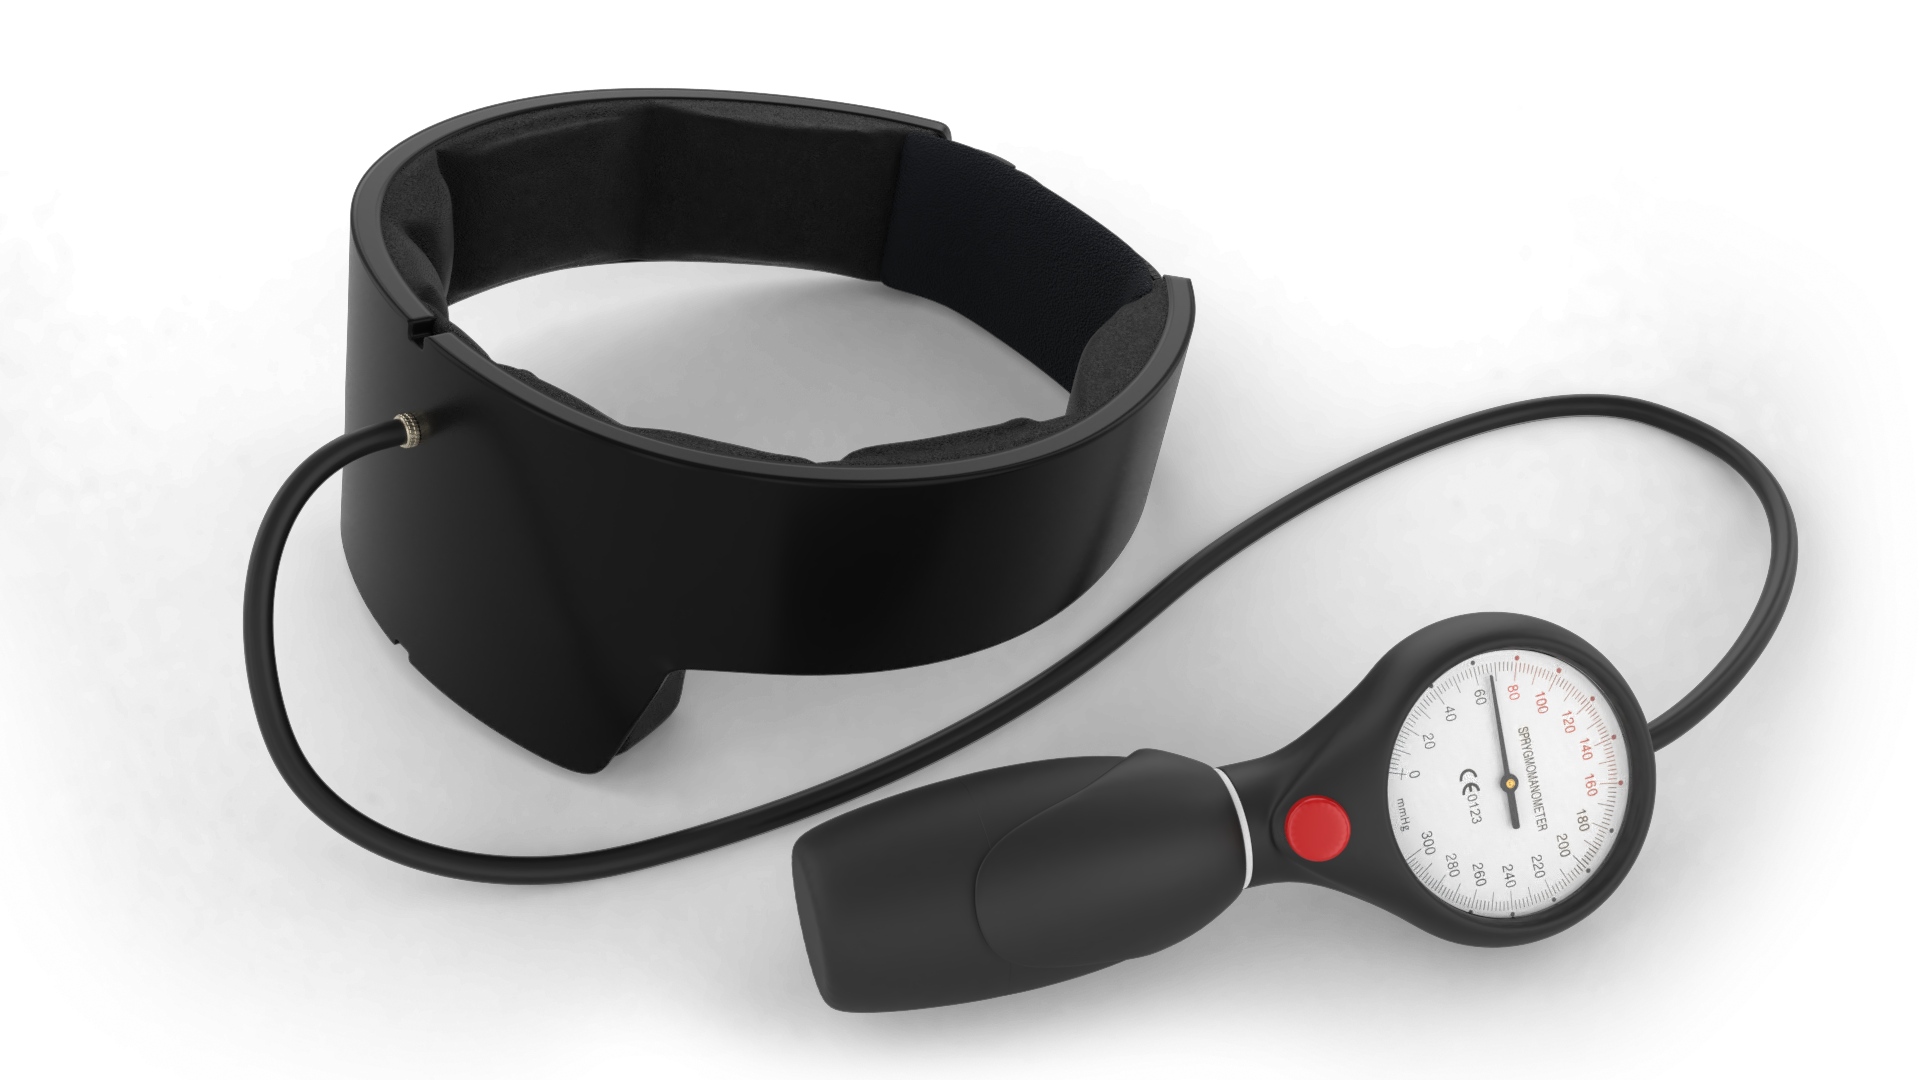 The Growband device